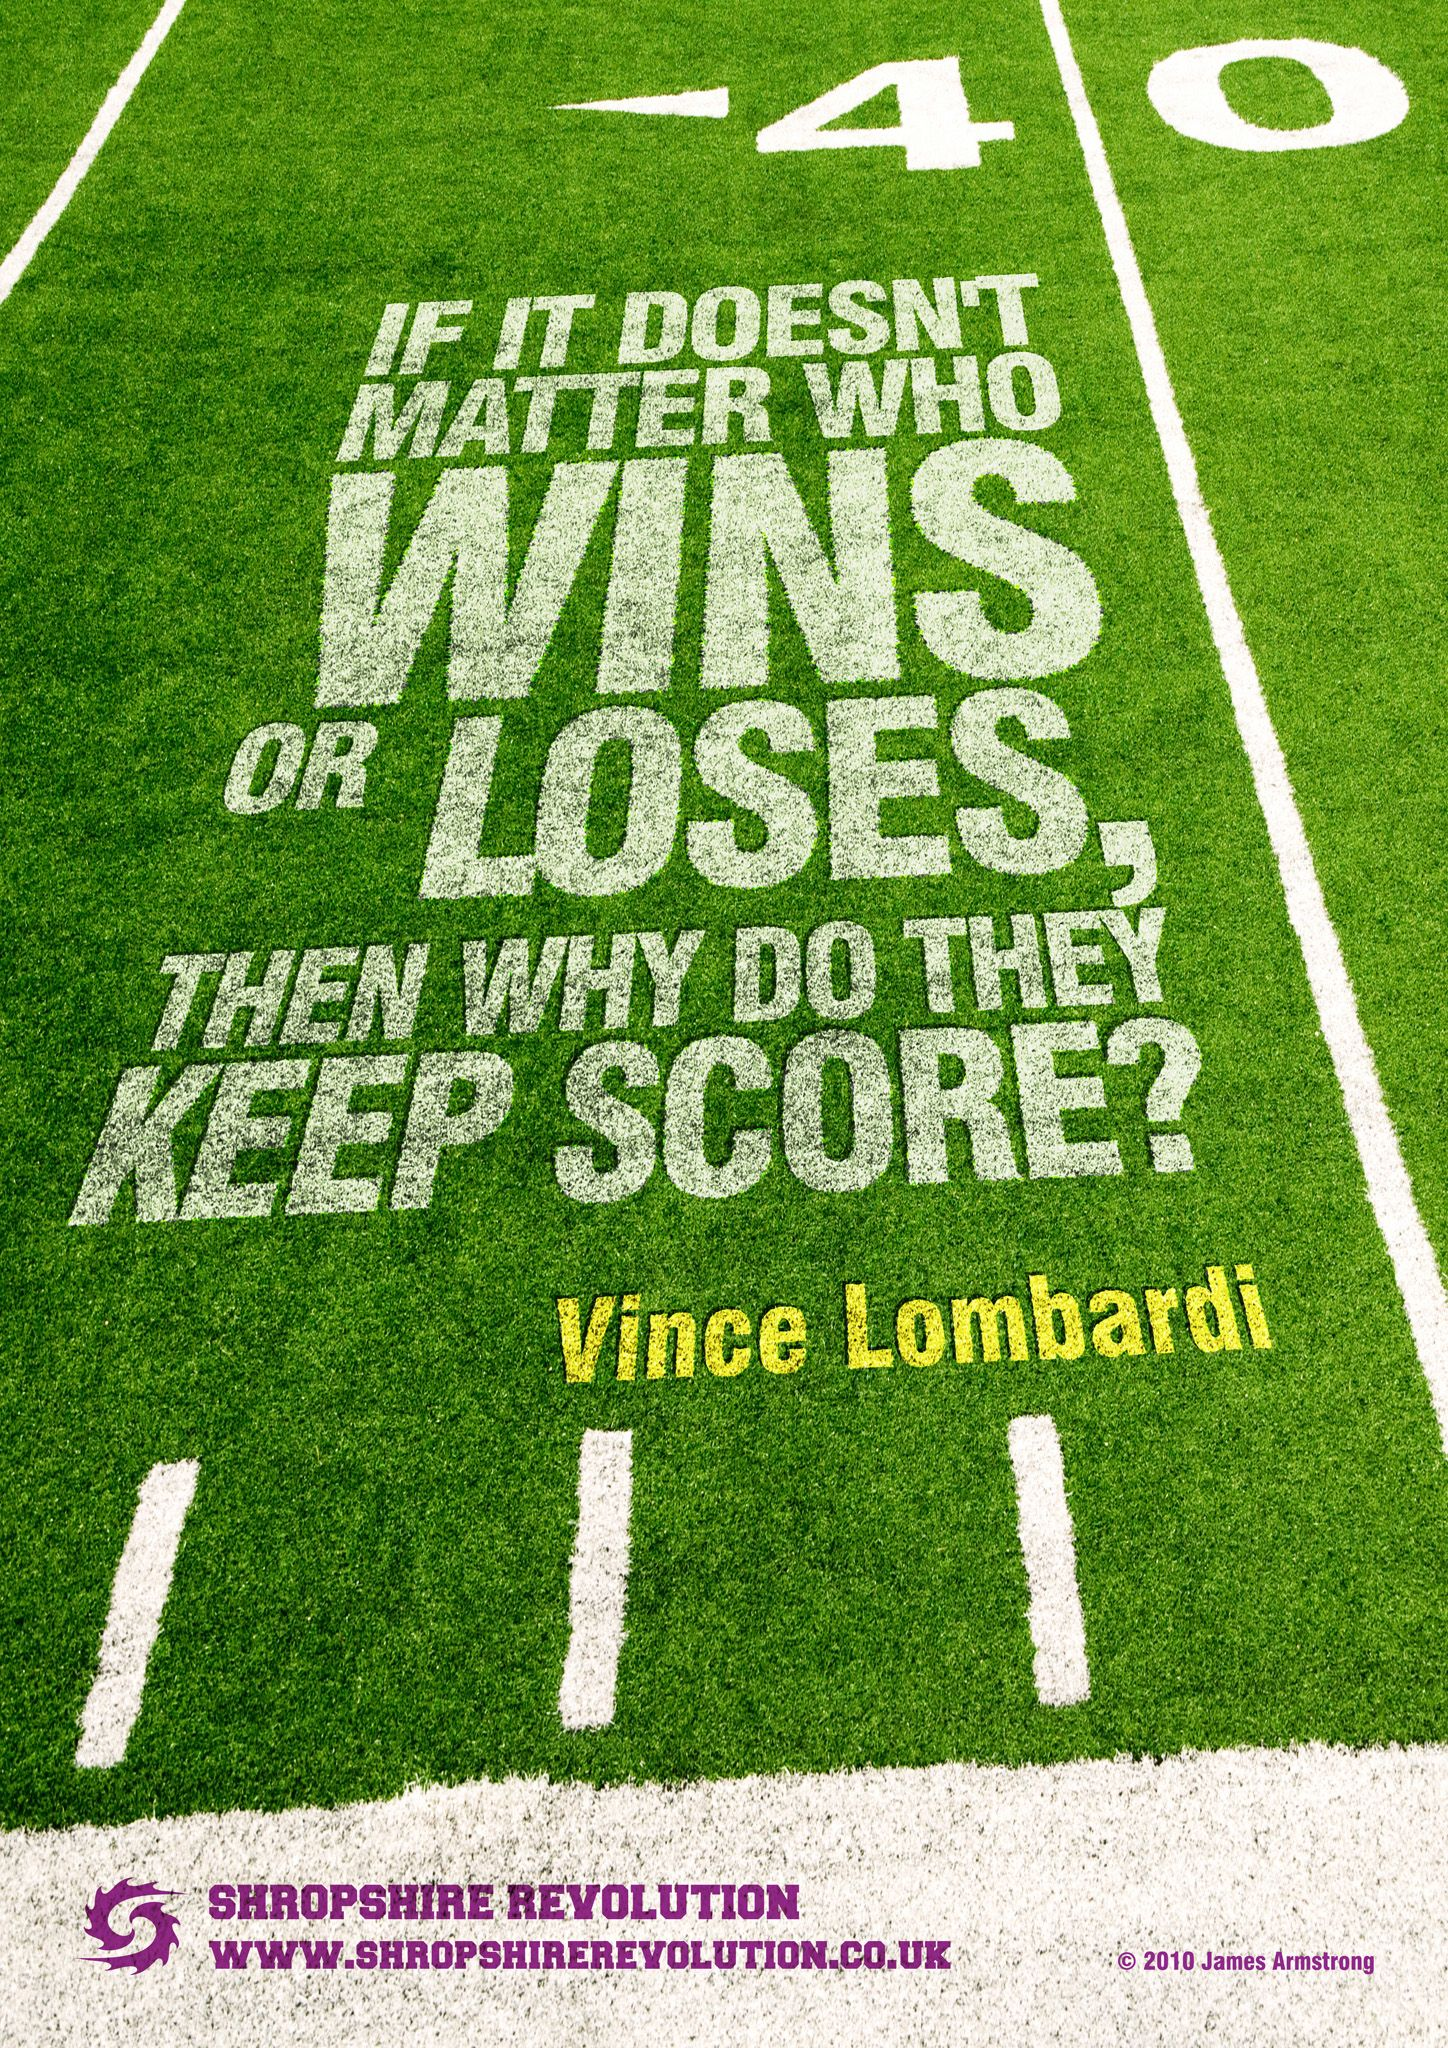 A Poster Design For American Football Team Shropshire Revolution Quote By Vince Lombardi Football Quotes Sports Quotes American Football